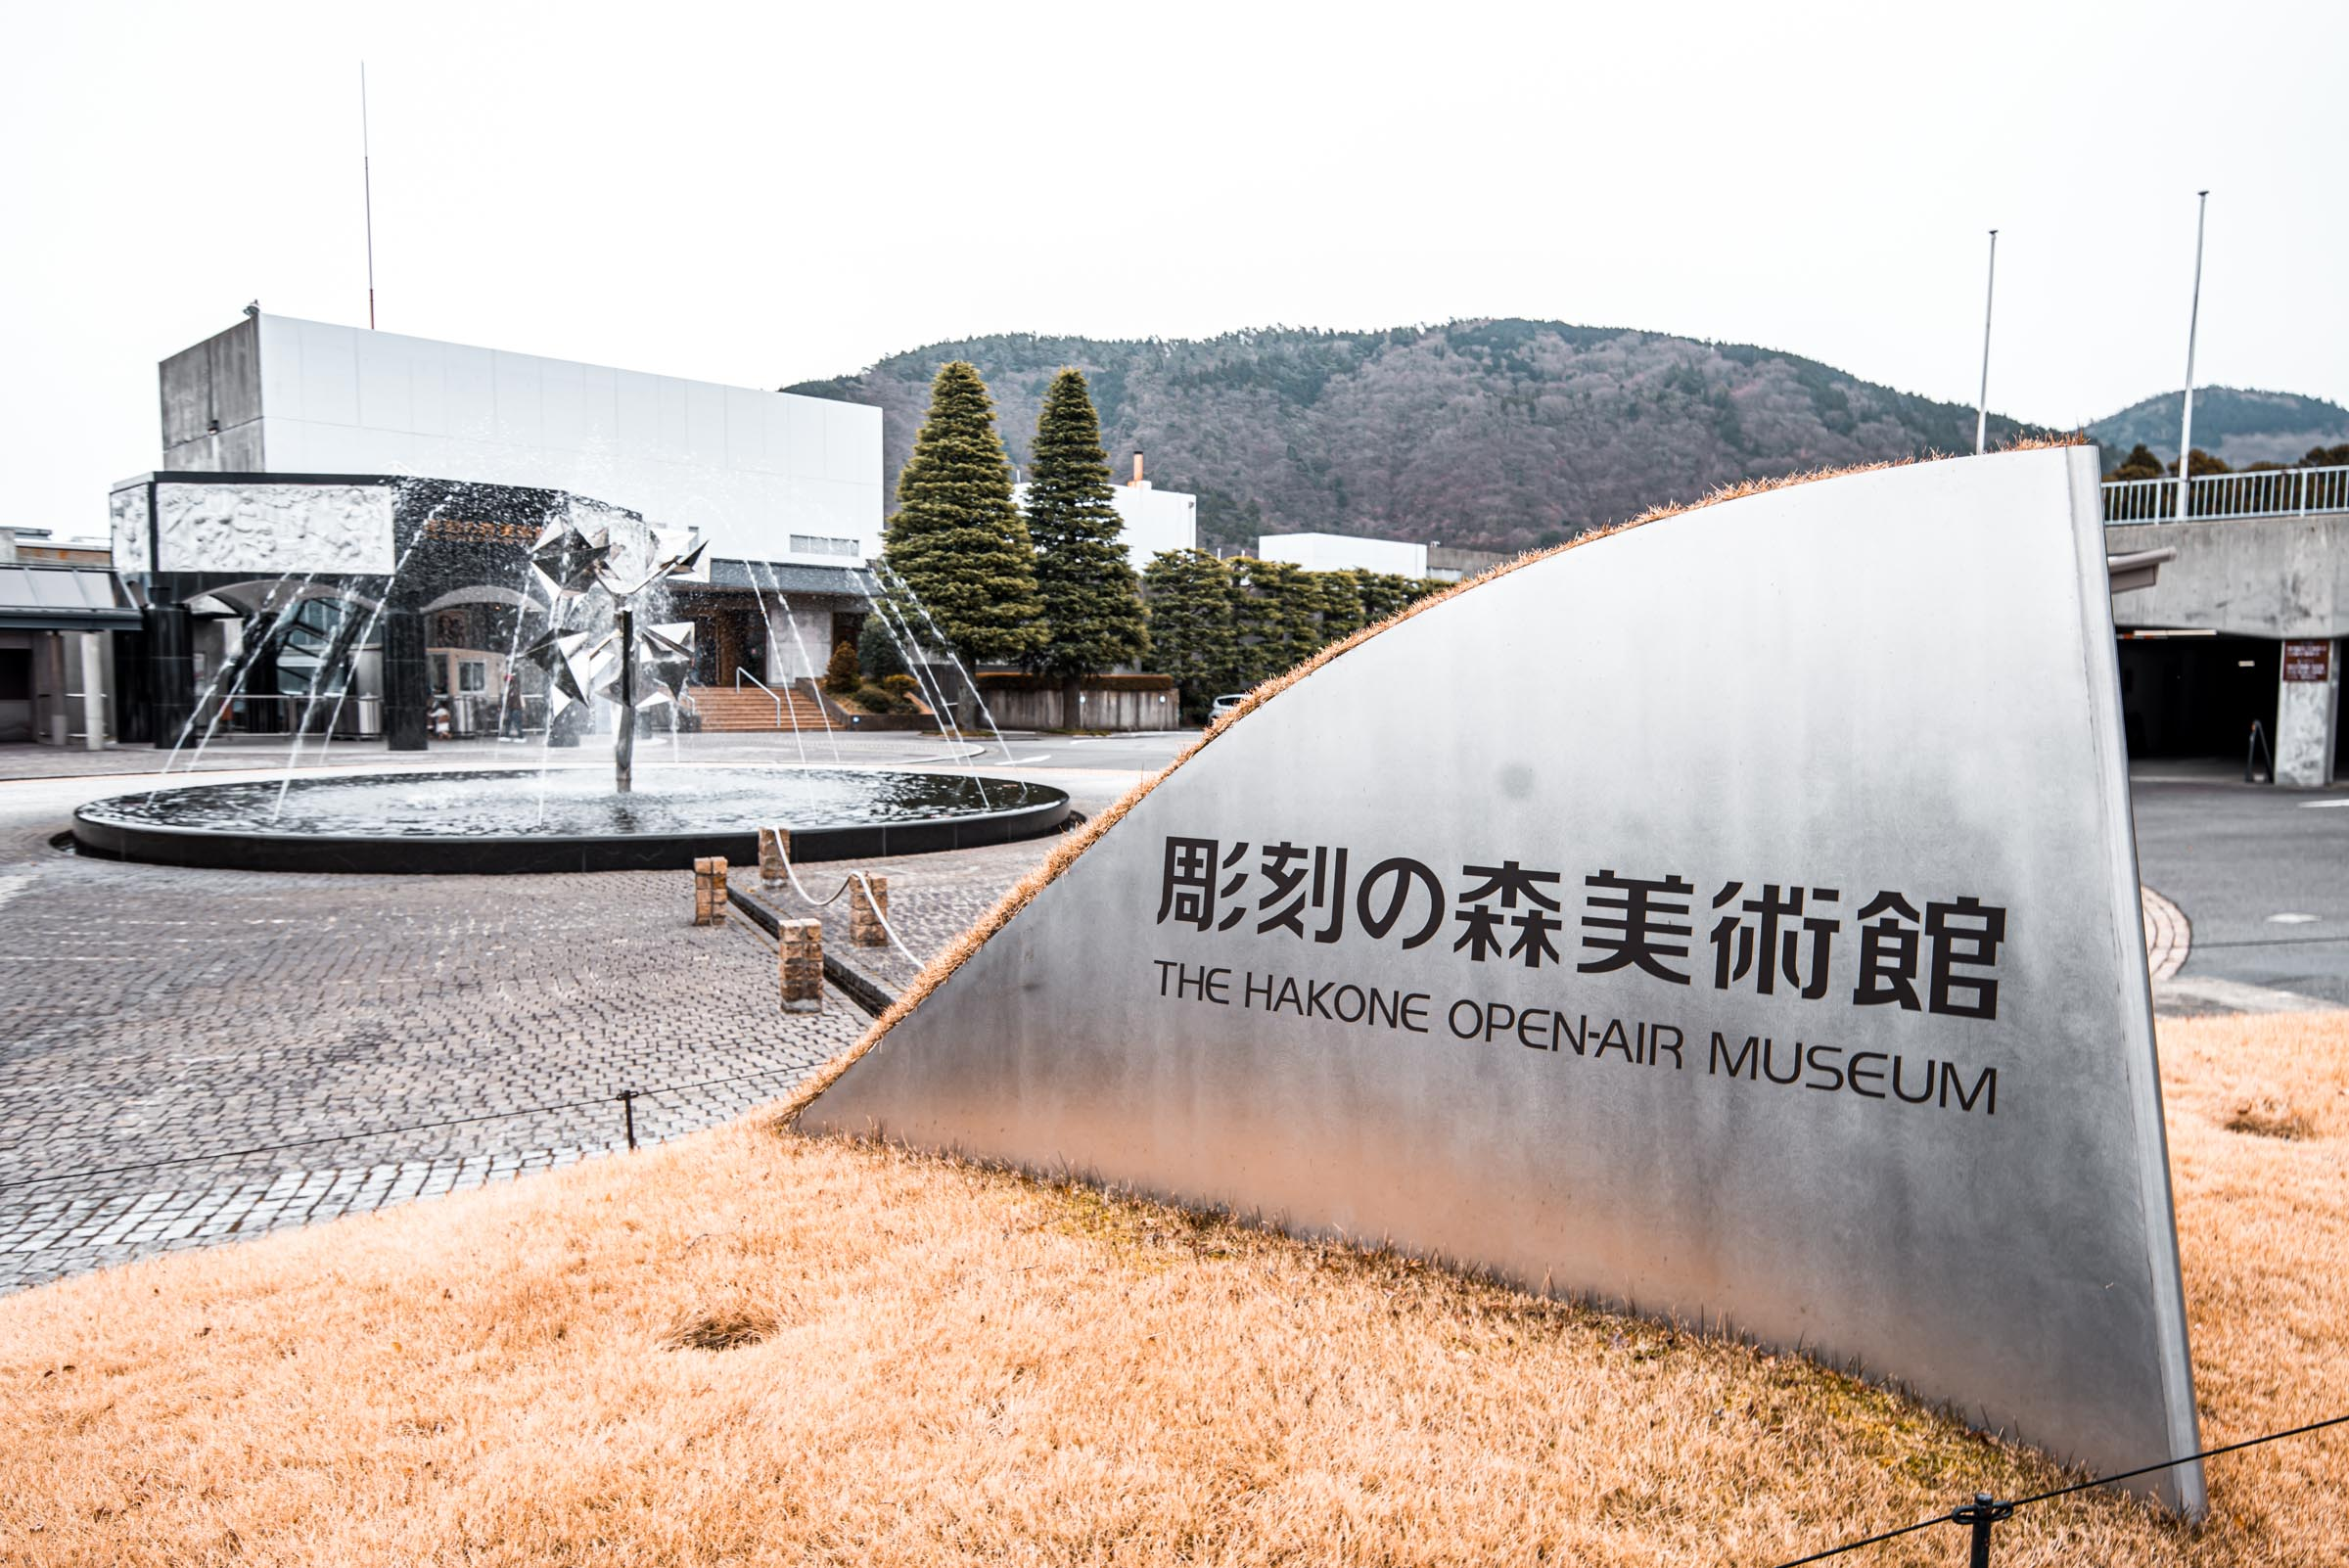 Hakone Open-Air Museum- things to do in hakone